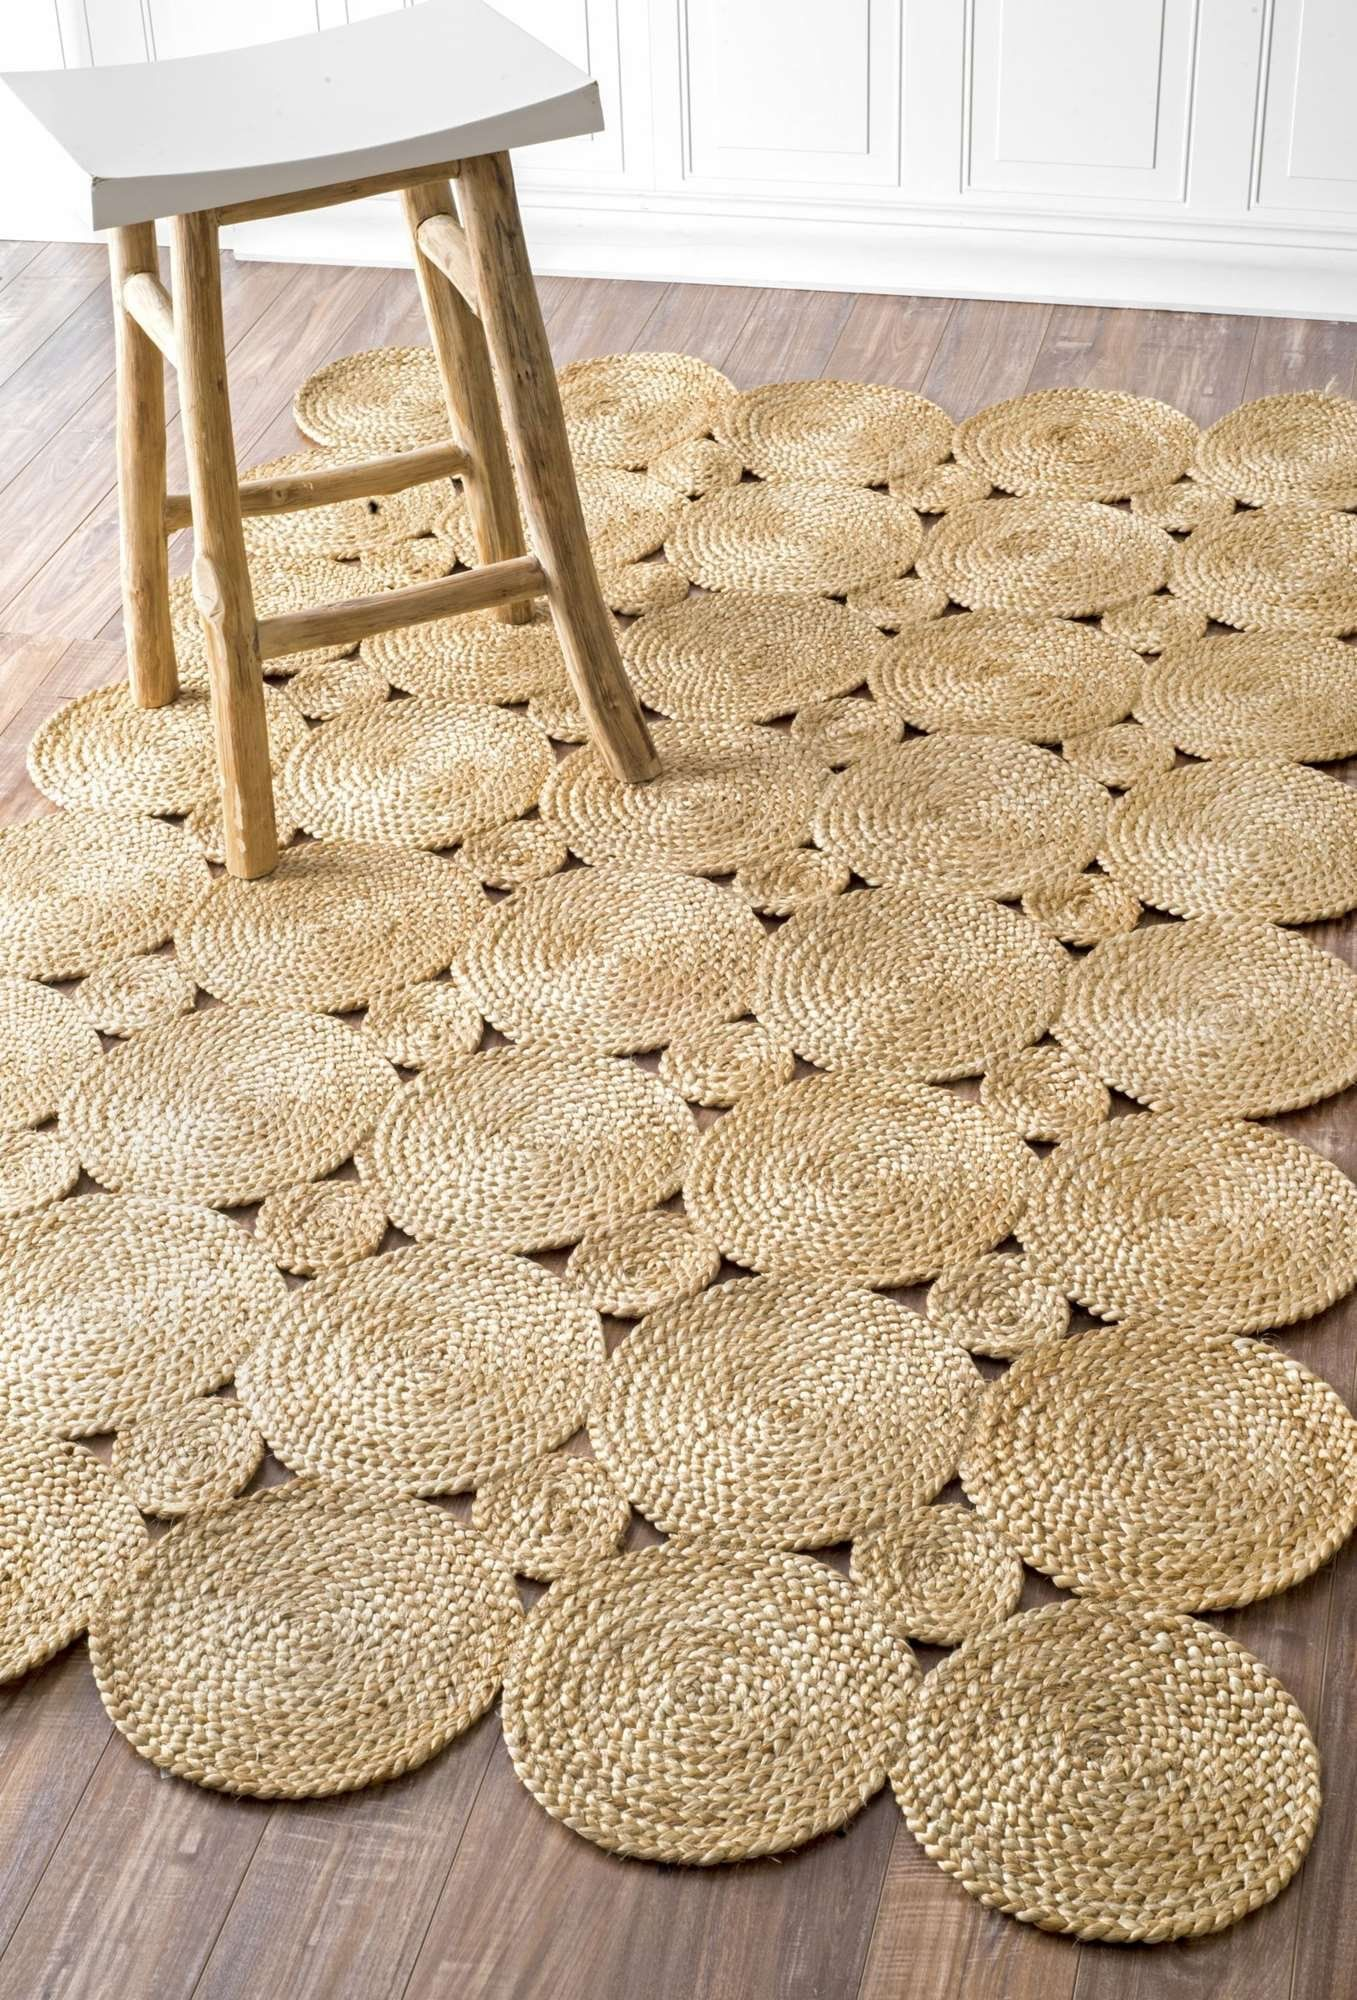 Contemporary Area Rug Indoor Outdoor Rugs Oval Round 5 X 8 Rectangle Natural Color Braided Decorative Circles Pattern Home Decoration